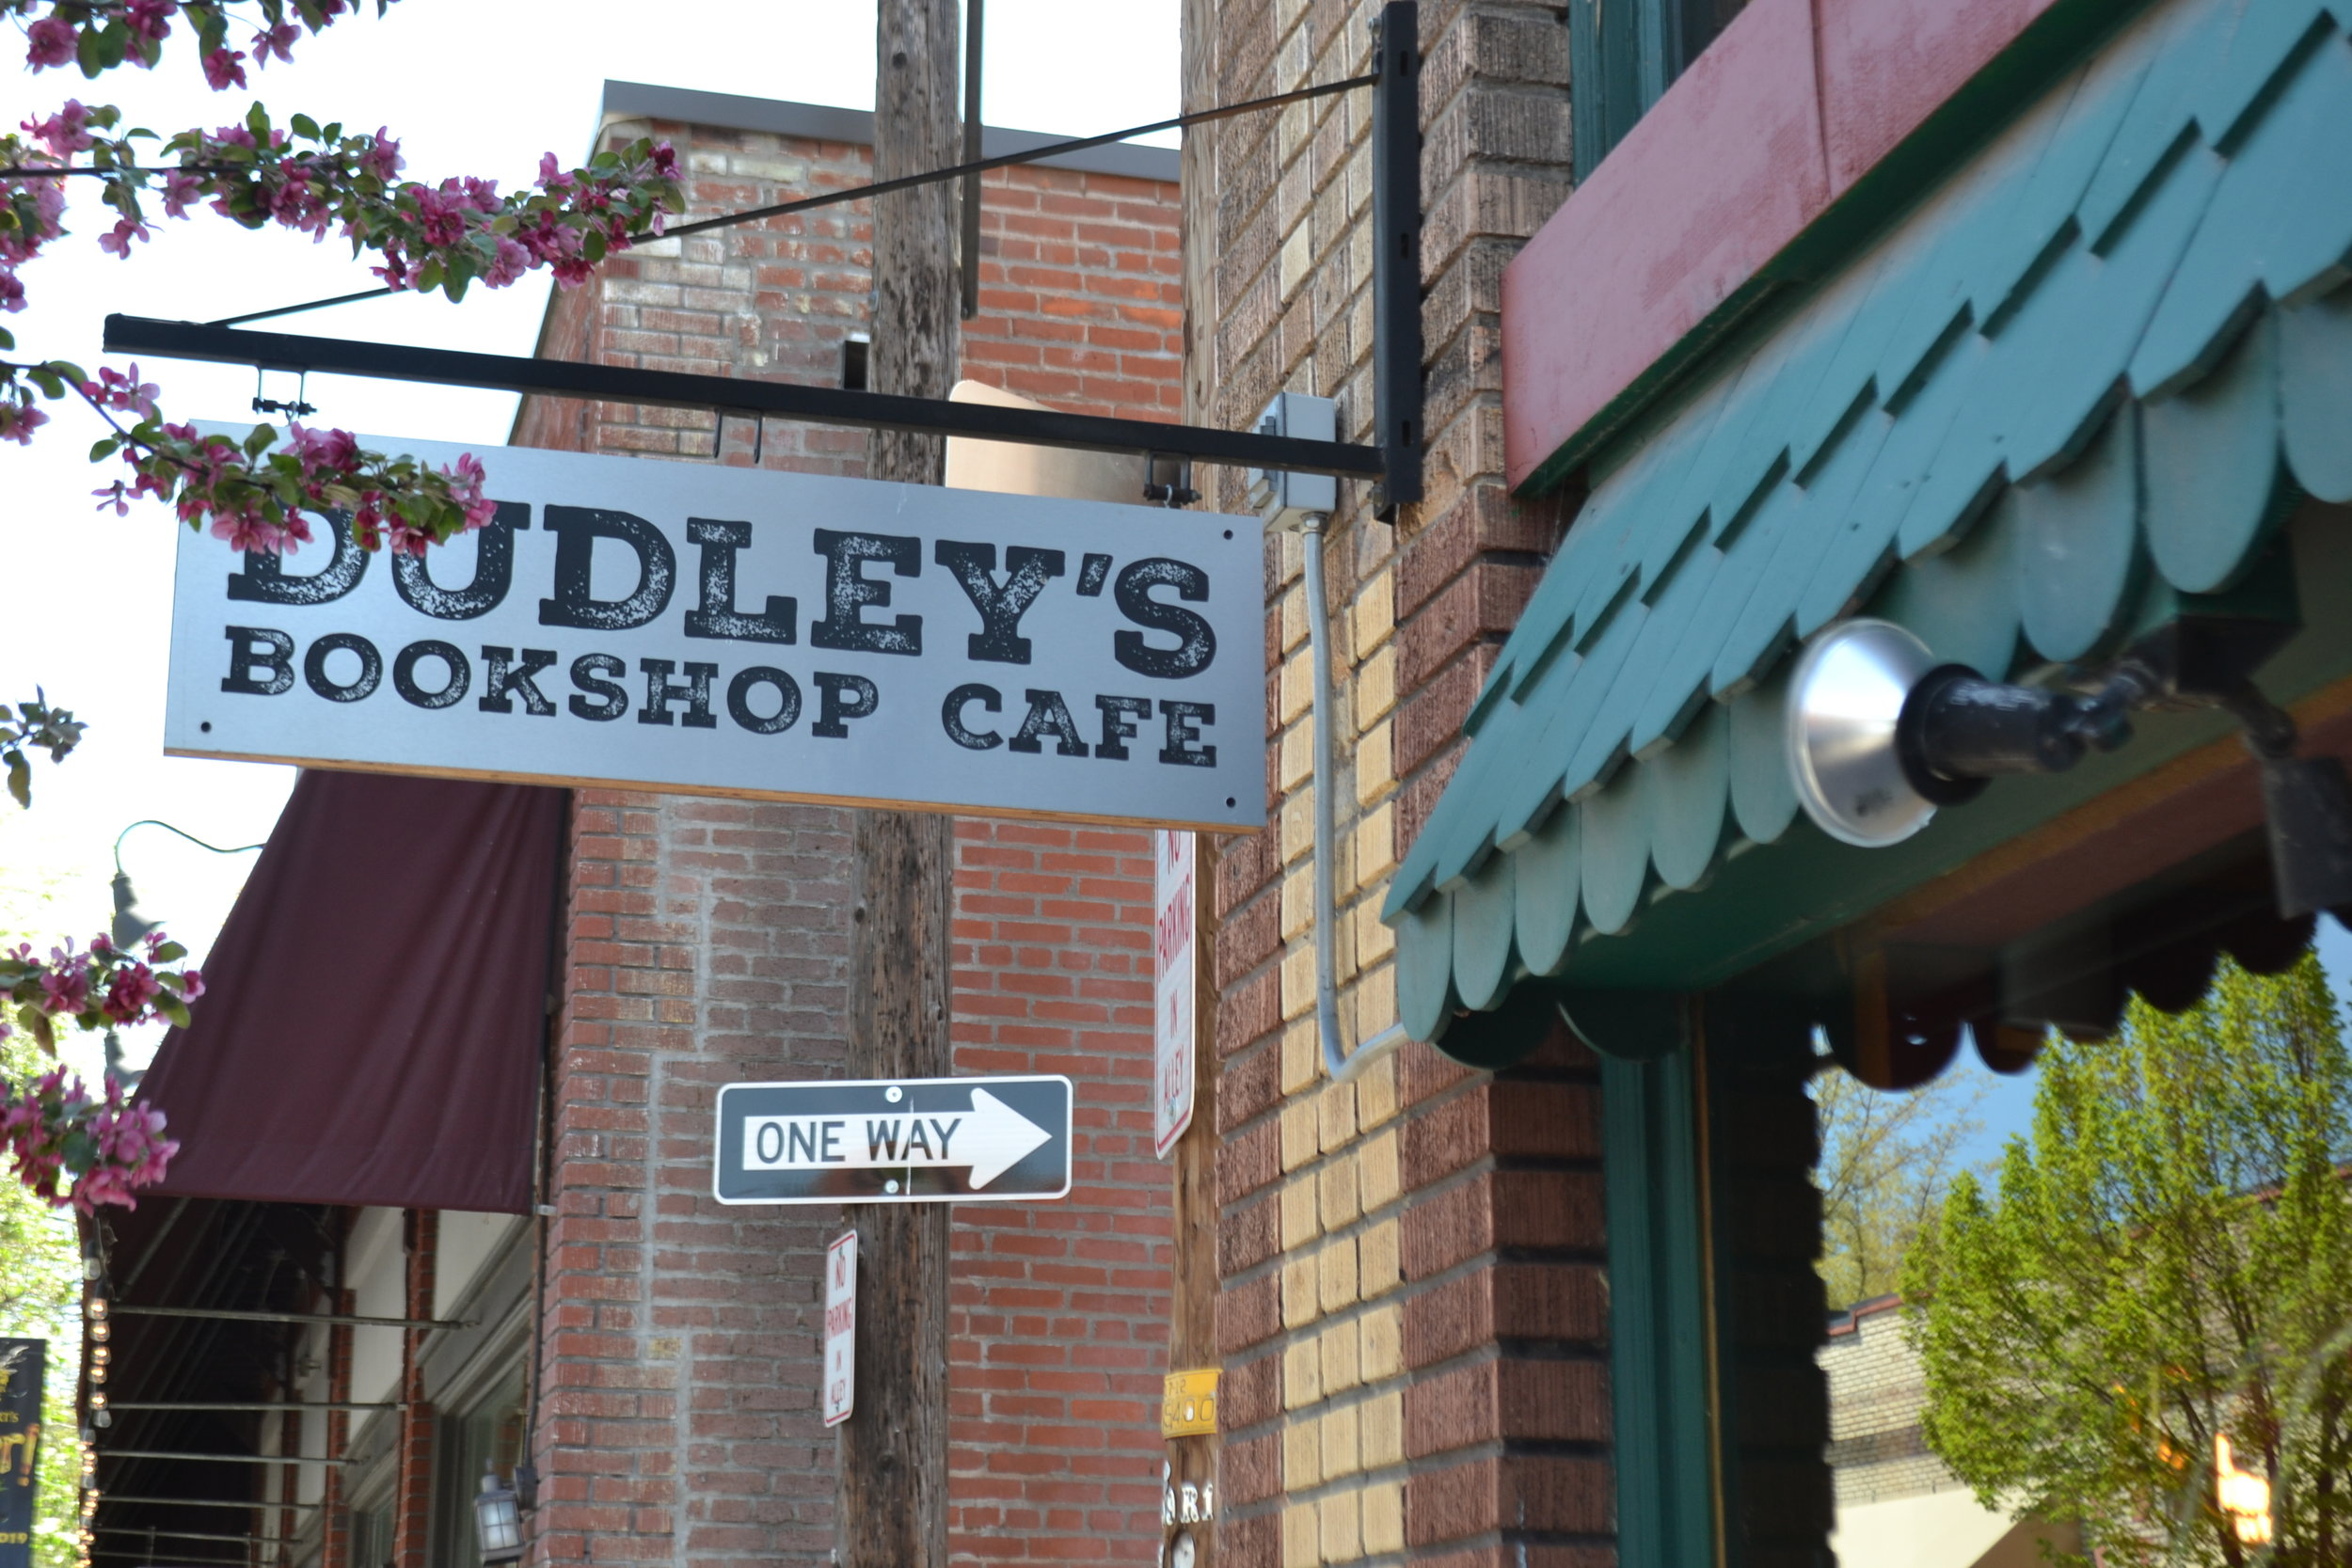 Dudley's Bookshop Cafe - 135 NW Minnesota Ave., Bend, OROfficial BYOC Bend Supporting Business since May 2019Dudley's Bookshop Cafe was the first bookstore in the nation to donate 1% of their profit to local environmental nonprofits through the 1% for the Planet movement. Support Dudley's environmental efforts further and experience their cozy bookshop by bringing in your own cup for a double-shot classic espresso drink (warm or iced), chai tea or even a beer or wine.